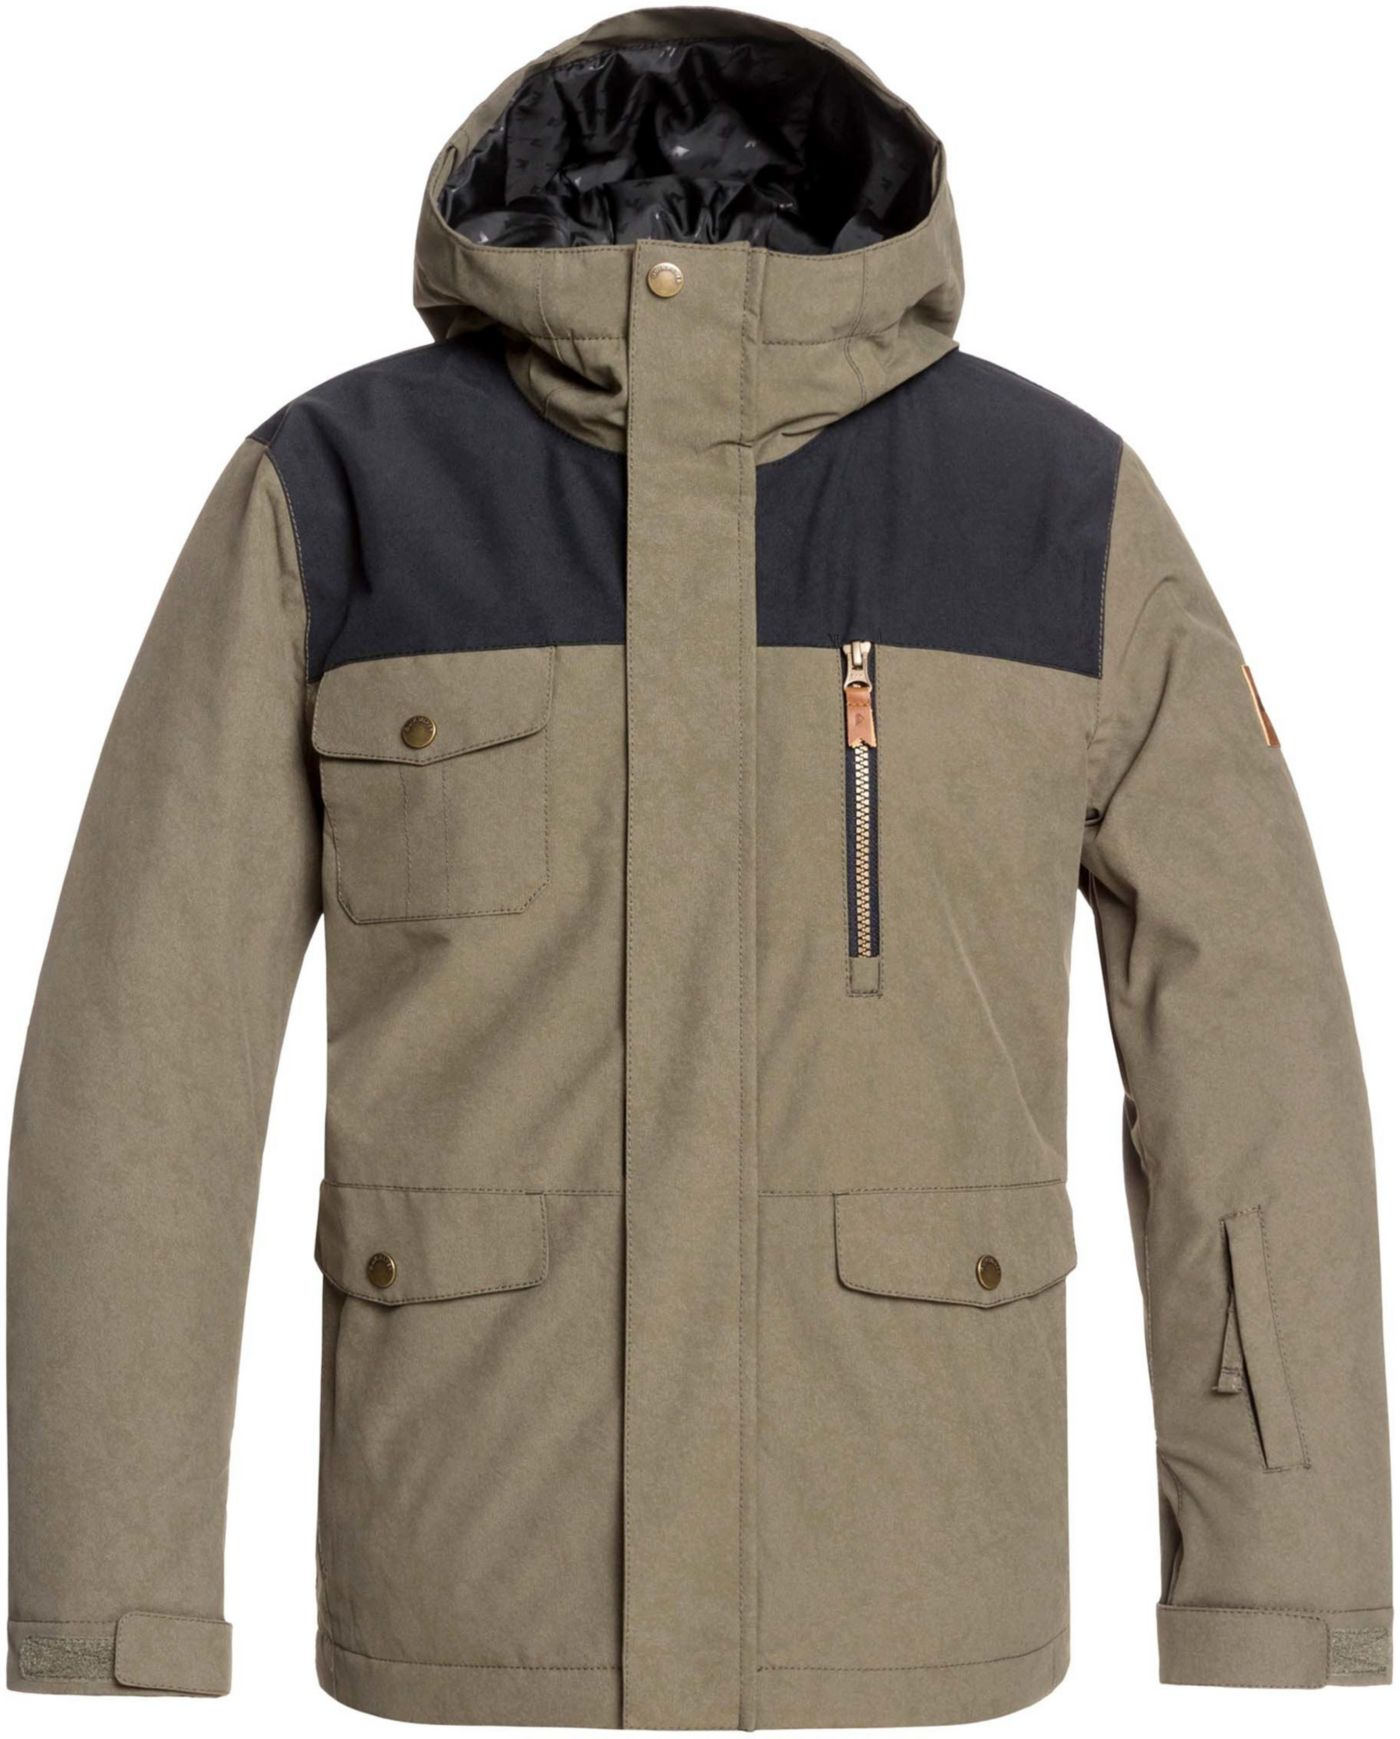 Quiksilver Boys' Raft Insulated Snow Jacket